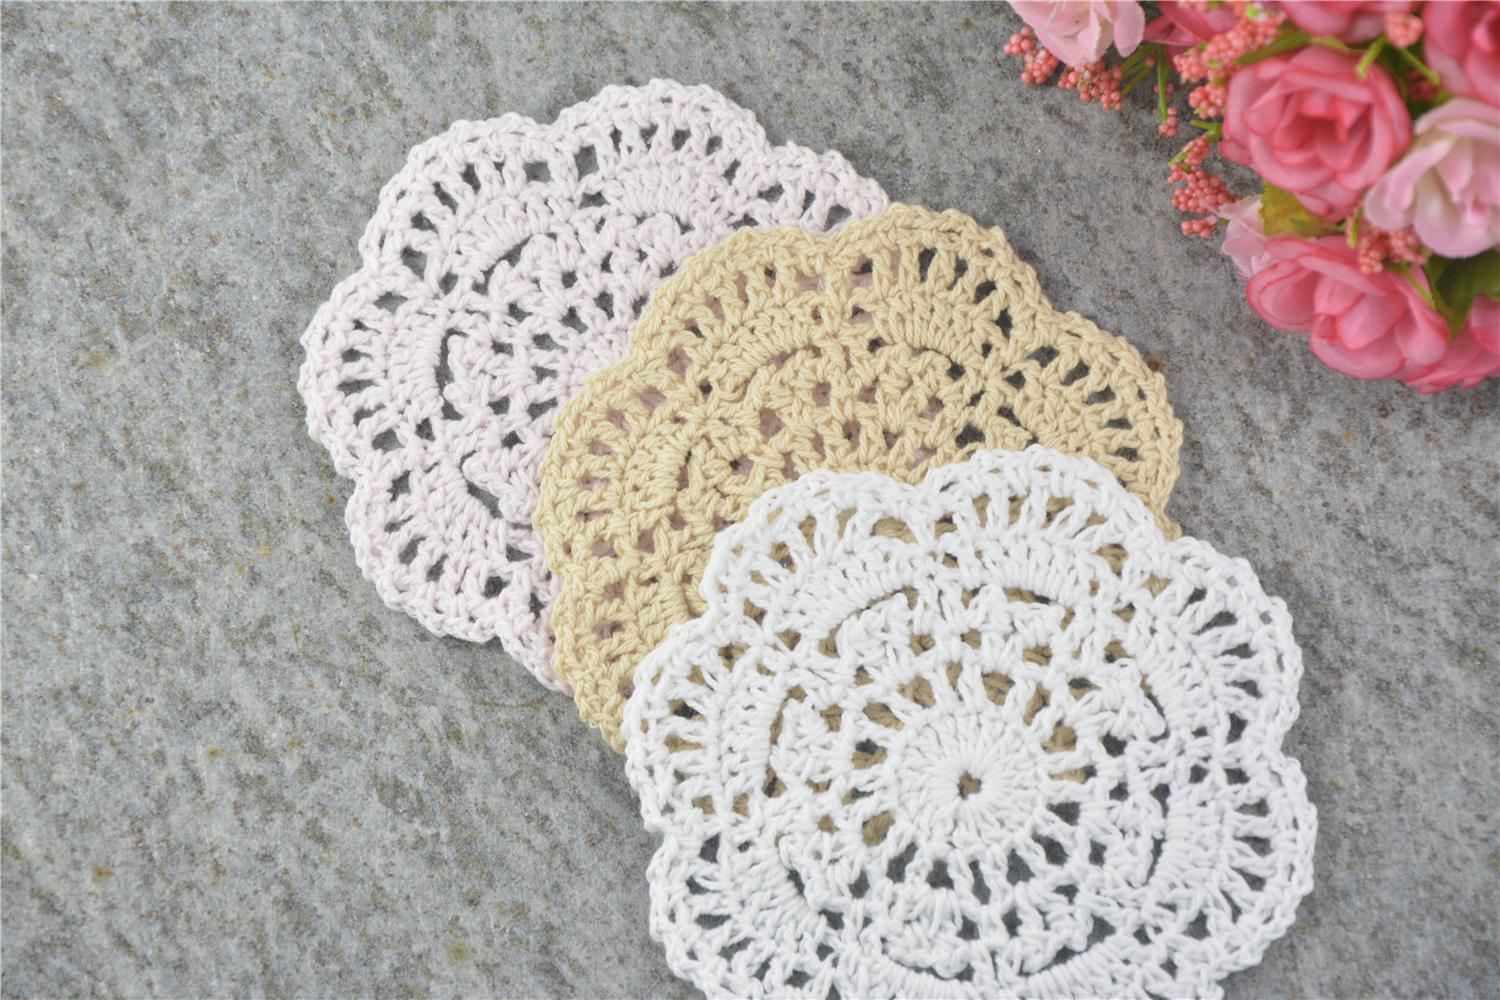 DIY Design Wedding Handmade Crochet Coasters Doily Placemats Crocheted Doilies Size 4 inches / Custom Color _DSC0221